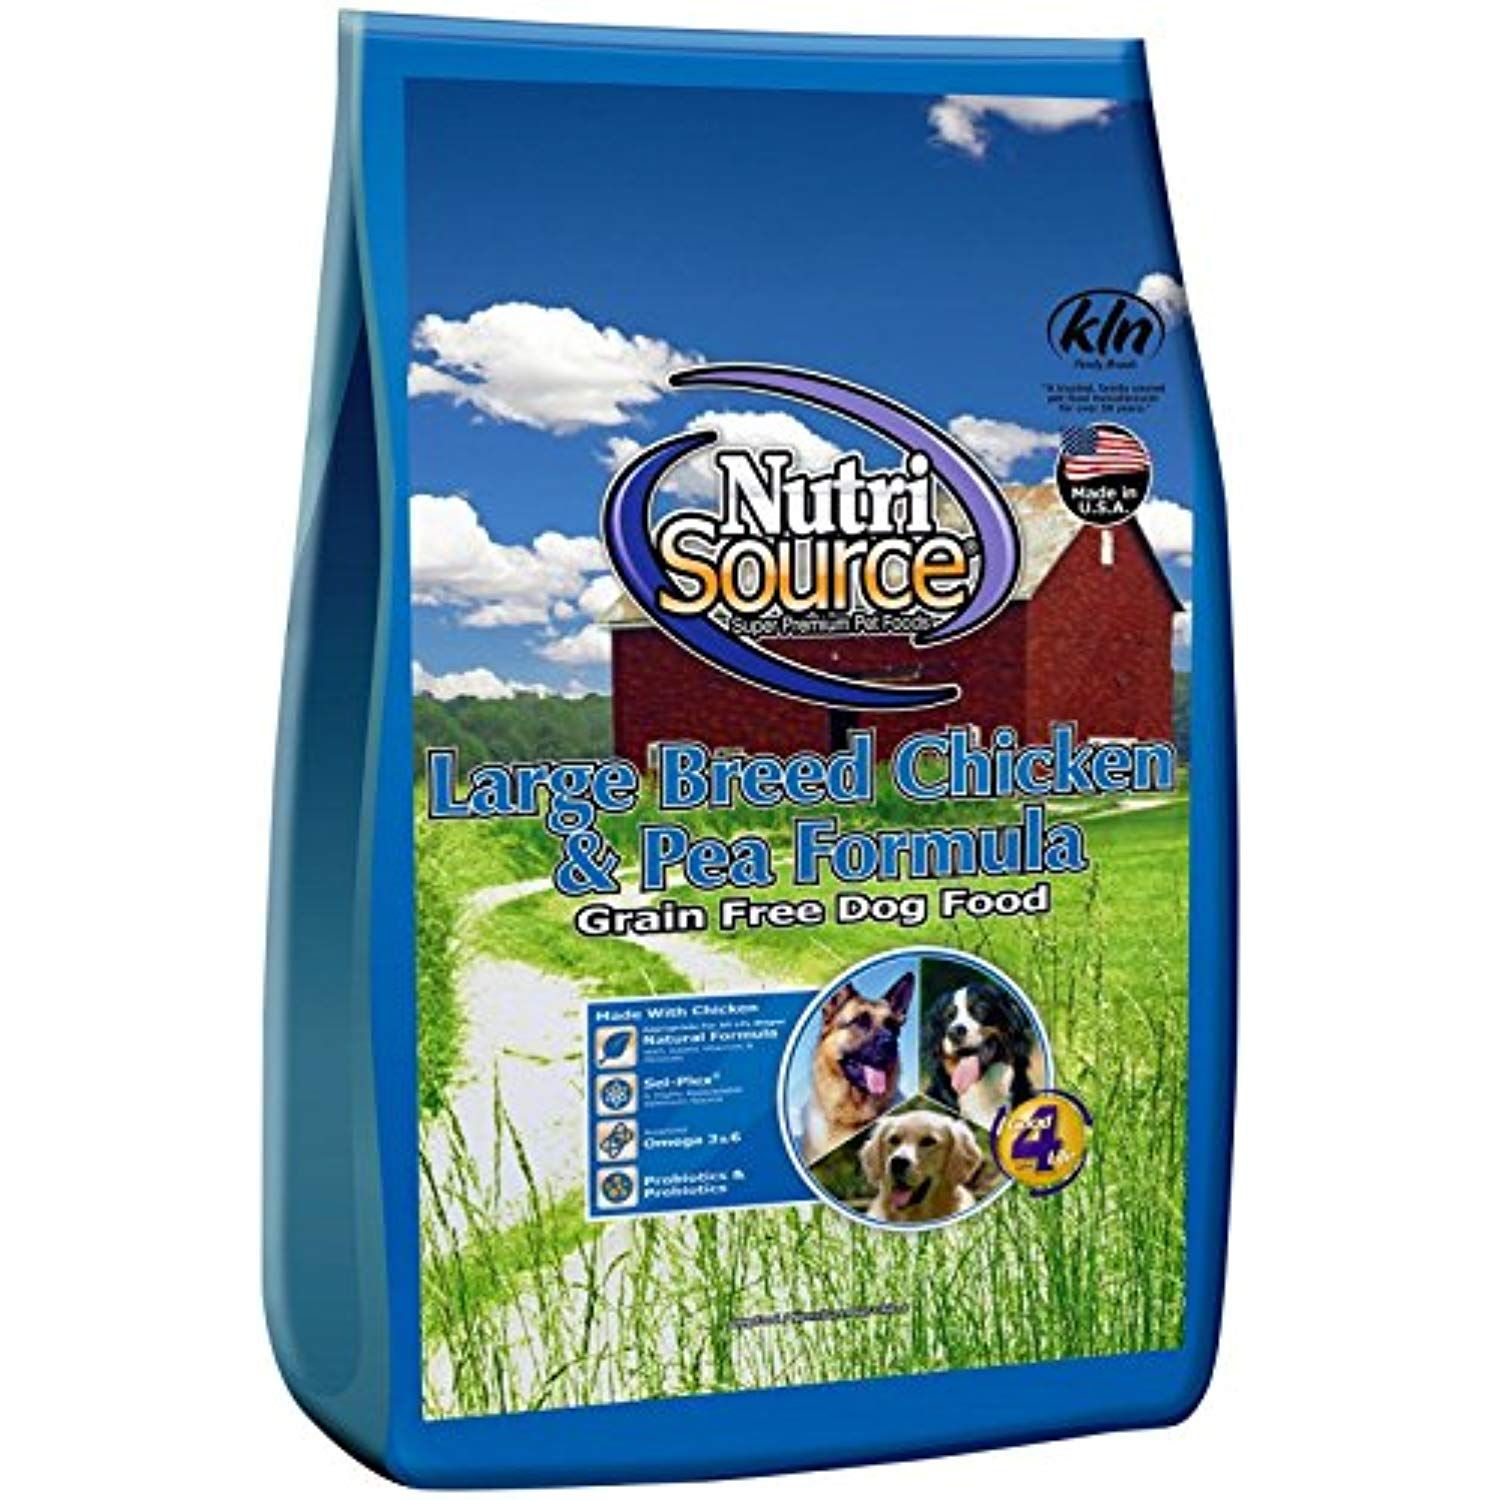 Nutri Source Grain Free Large Breed Chicken Dogs Dry Dog